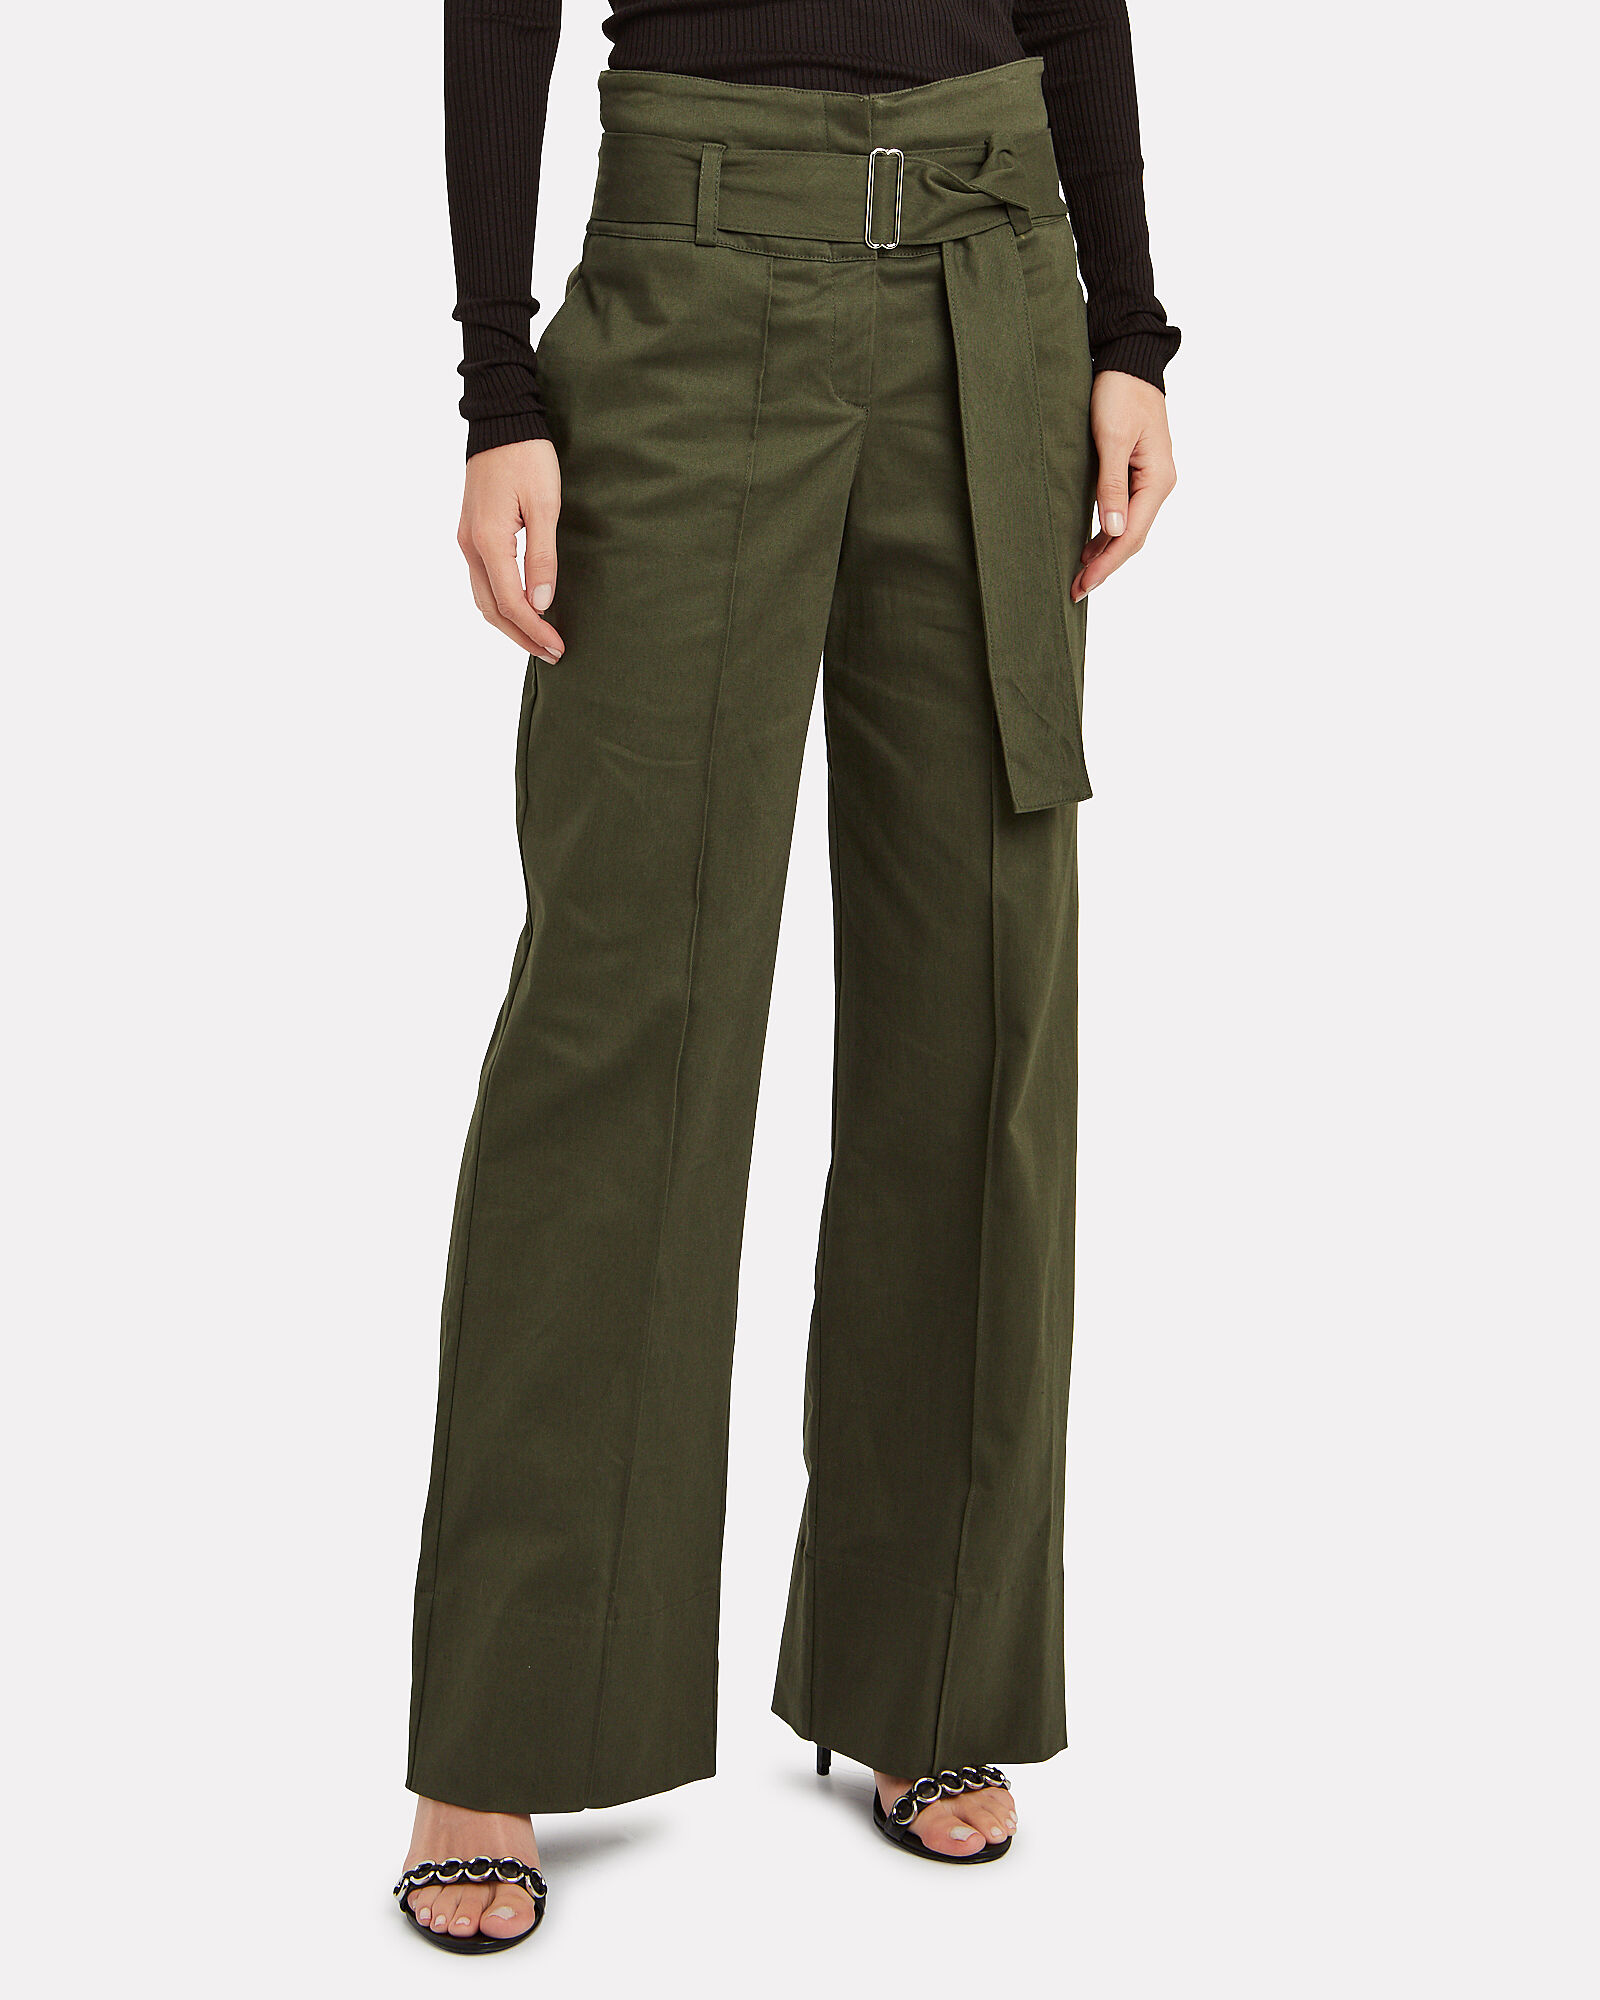 Belted Twill Utility Pant, OLIVE/ARMY, hi-res